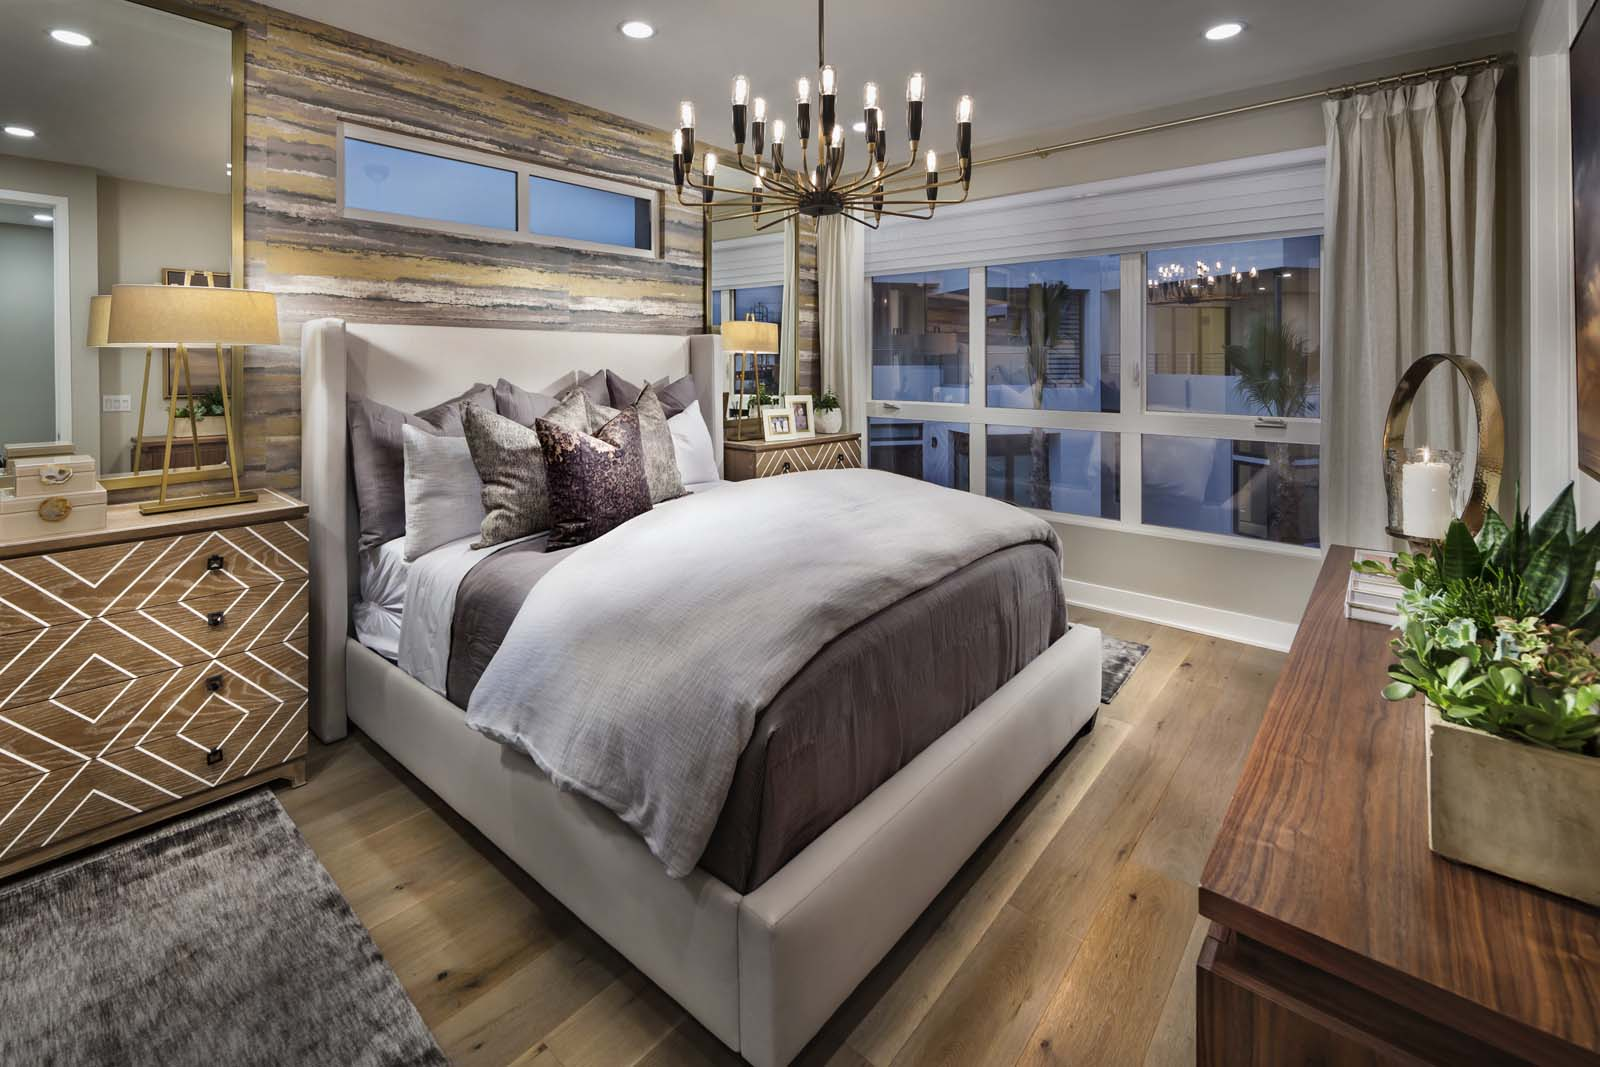 Homes For Sale In Los Angeles The Collection Aluminum Wiring California Master Bedroom At Playa Vista Ca Brookfield Residential